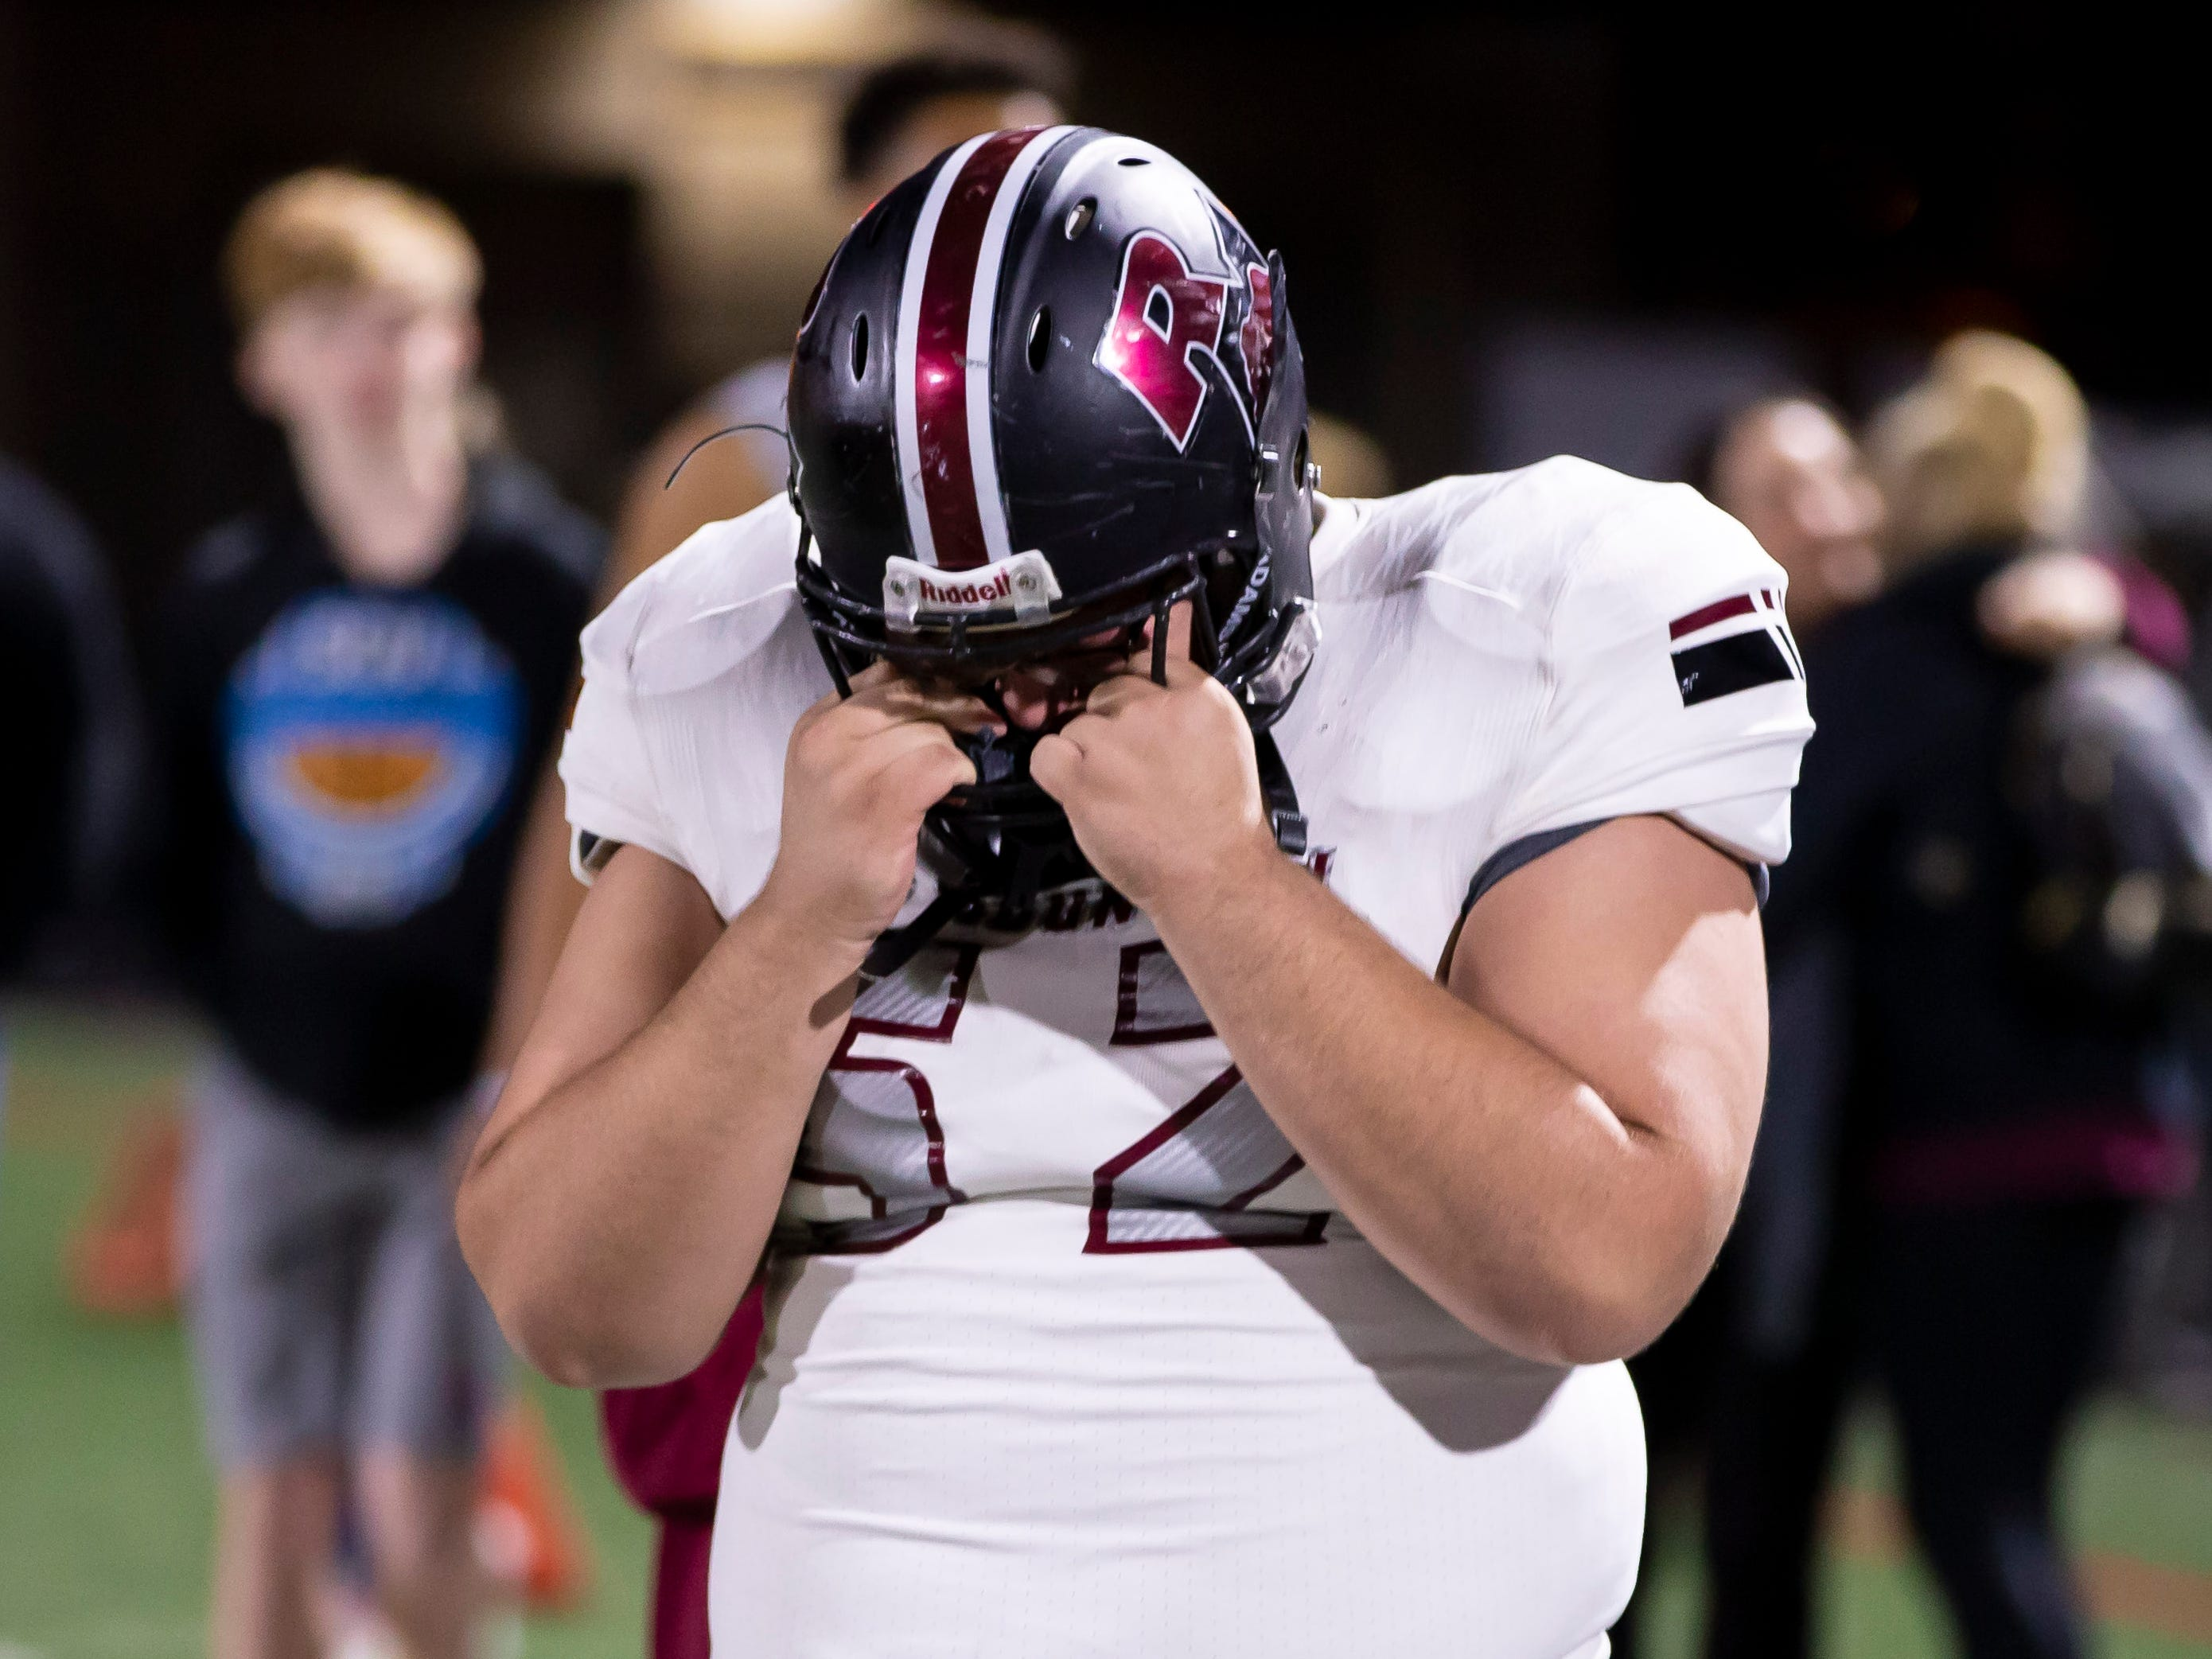 Senior center Gabriel Roberson (52) of the Red Mountain Mountain Lions reacts following Red Mountain's 41-20 loss against the Pinnacle Pioneers in the playoffs at Pinnacle High School on Friday, November 9, 2018 in Phoenix, Arizona. #azhsfb